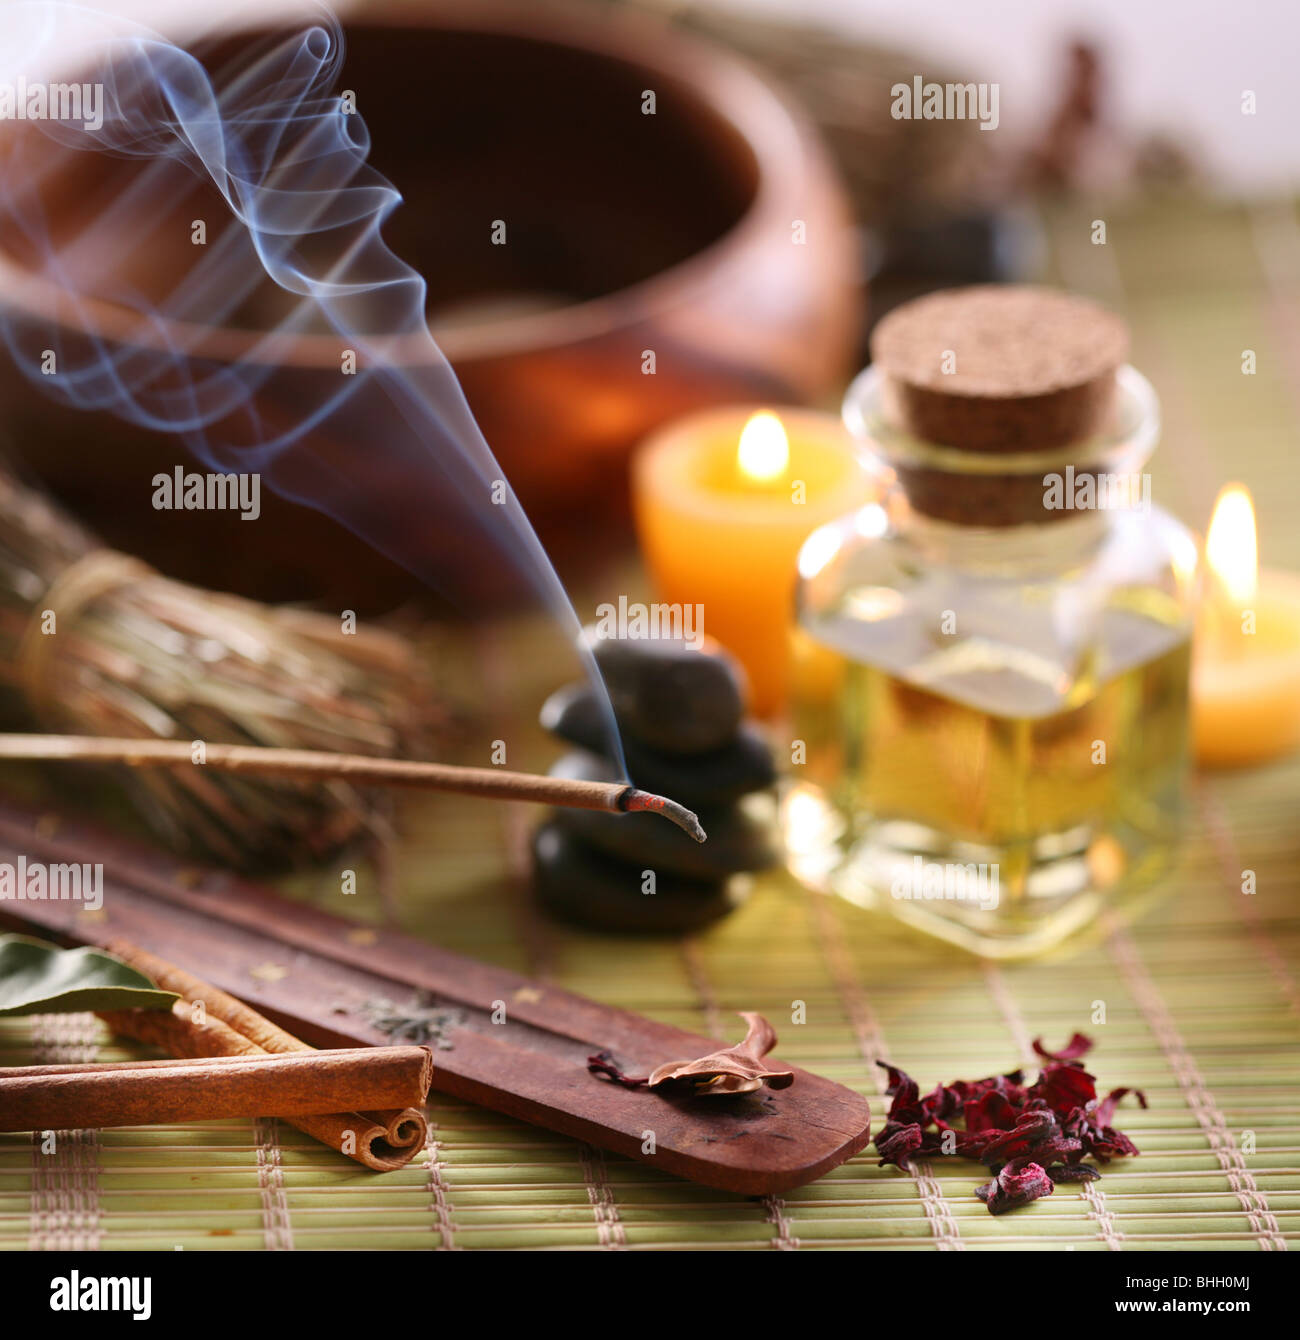 Still Life with aroma sticks in the spa salon. - Stock Image